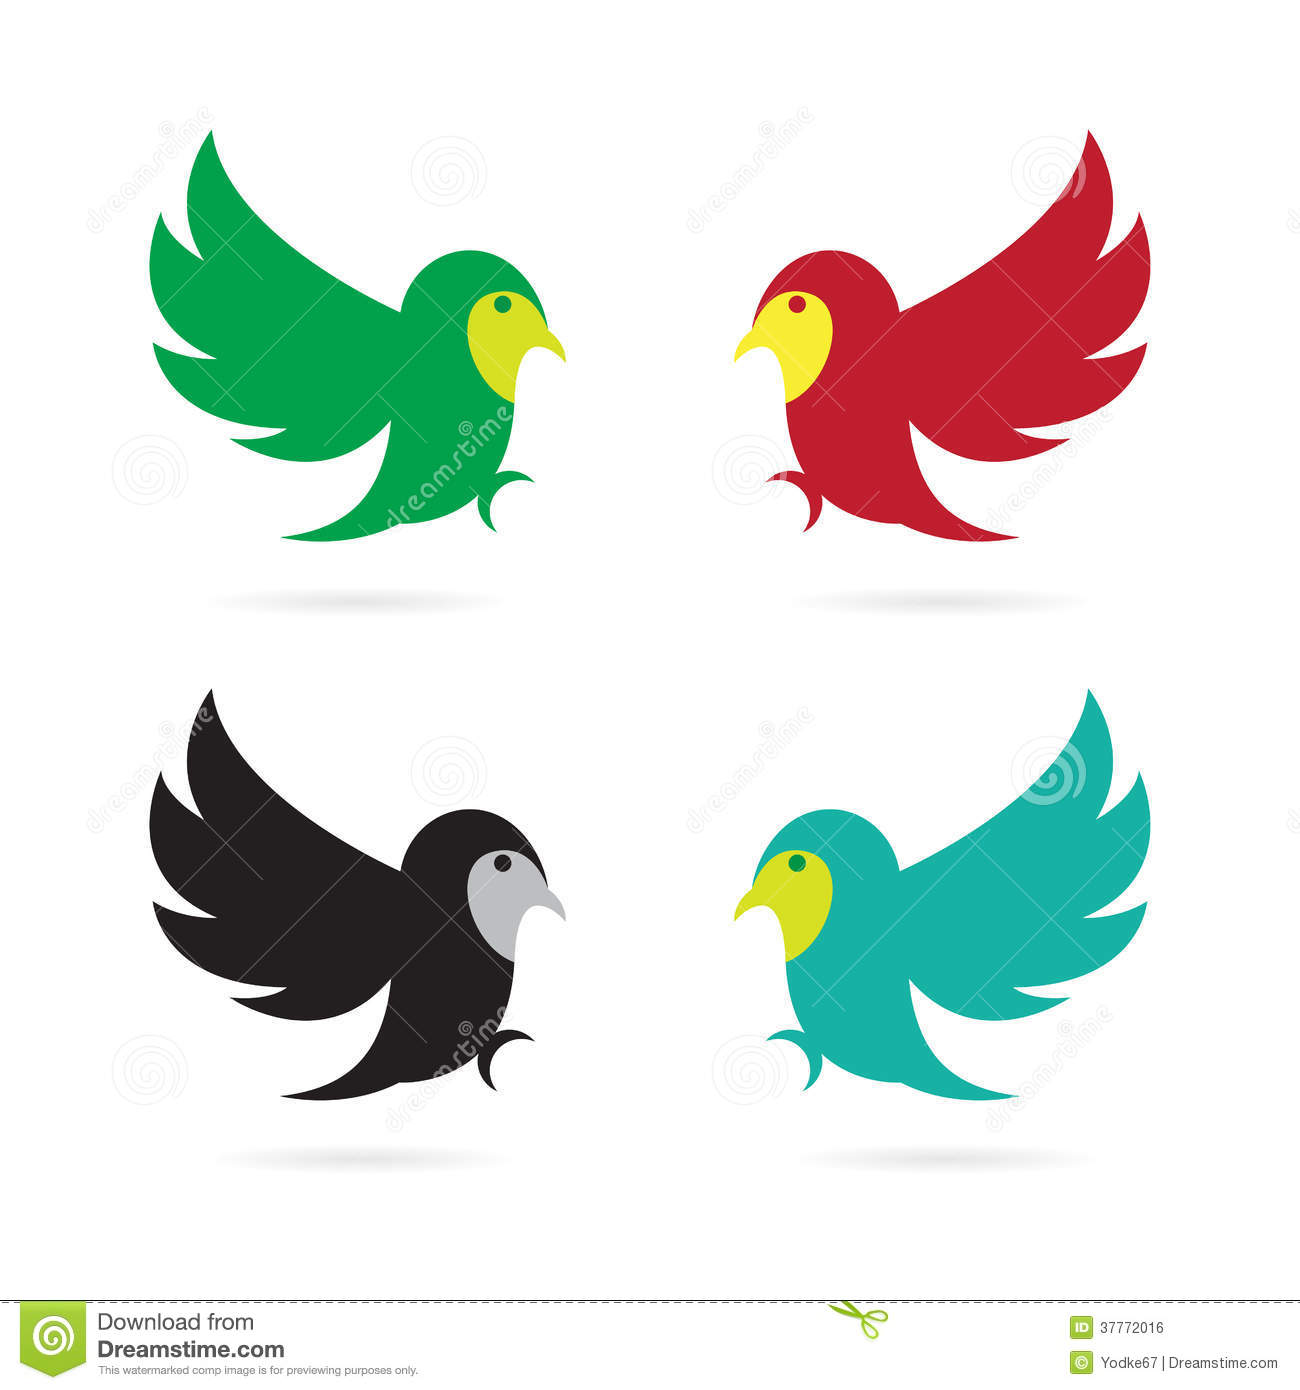 Vector Image Of An Flying Bird Royalty Free Stock Image - Image ...